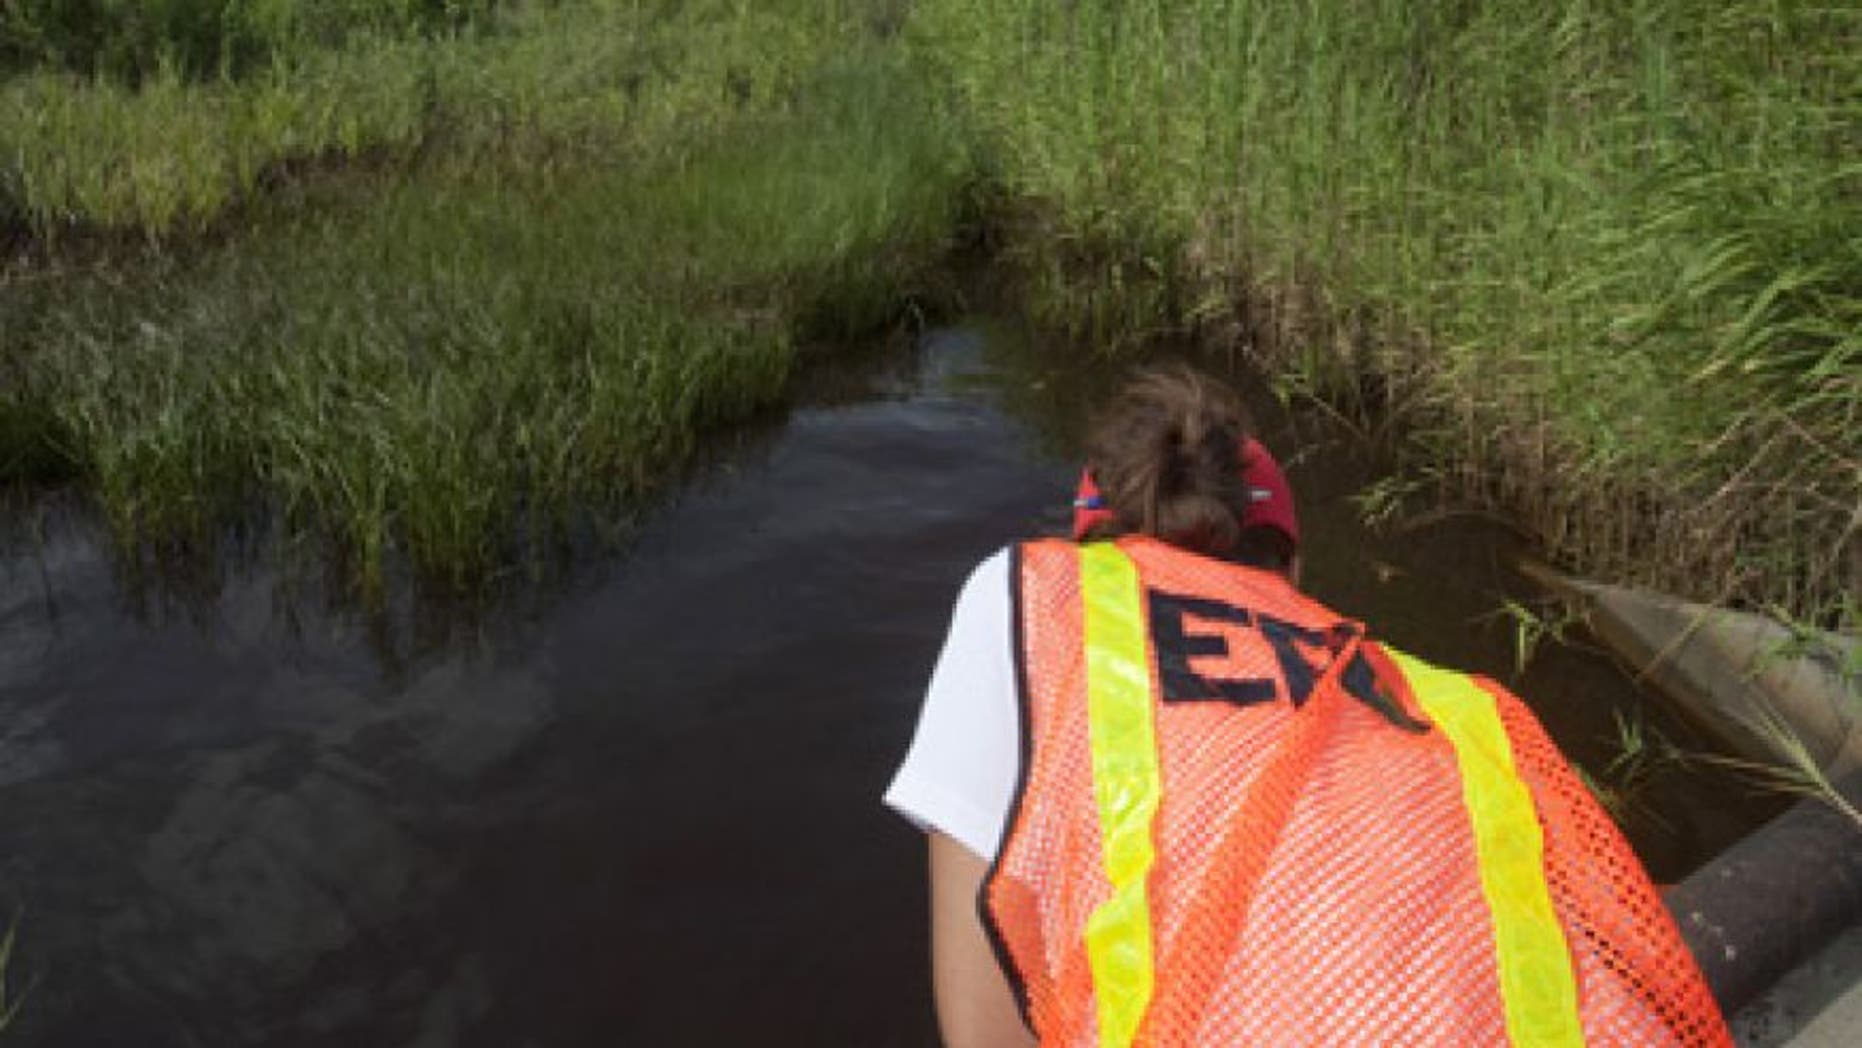 July 7, 2010: An Environmental Protection Agency worker looks at oil from the Deepwater Horizon spill which seeped into a marsh in Waveland, Mississippi.